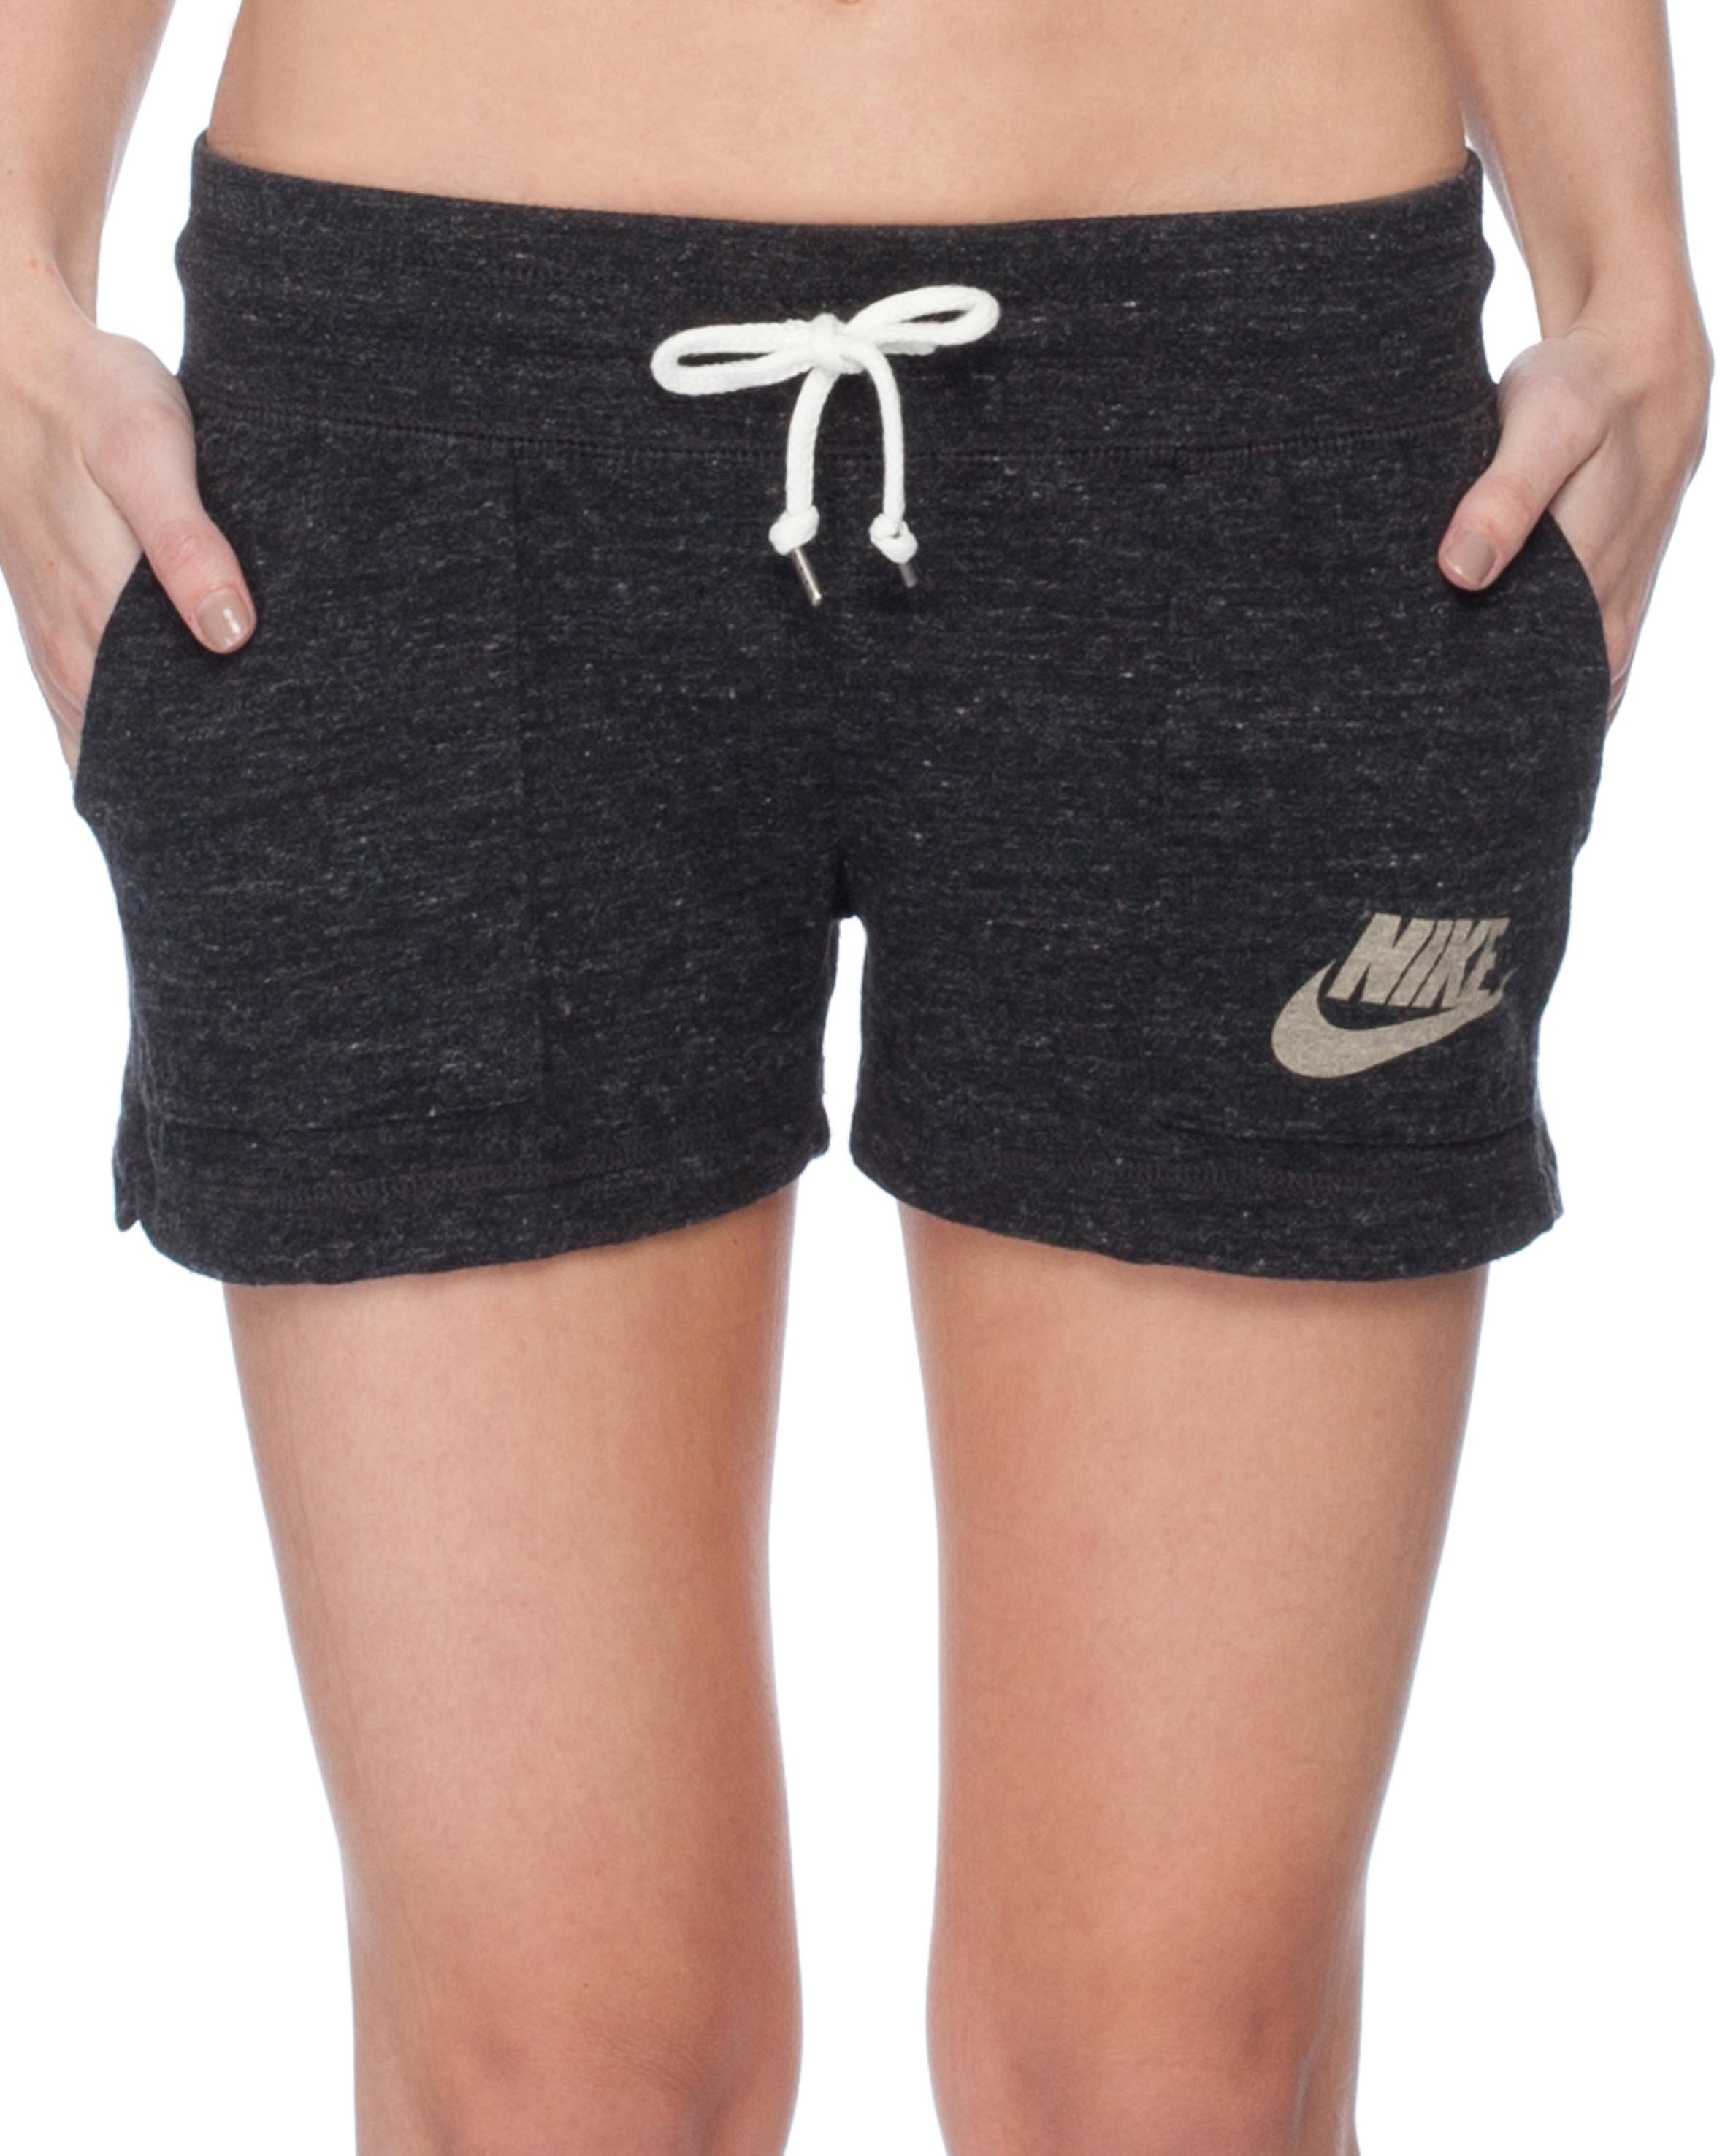 Nike workout clothes women. Cheap clothing stores